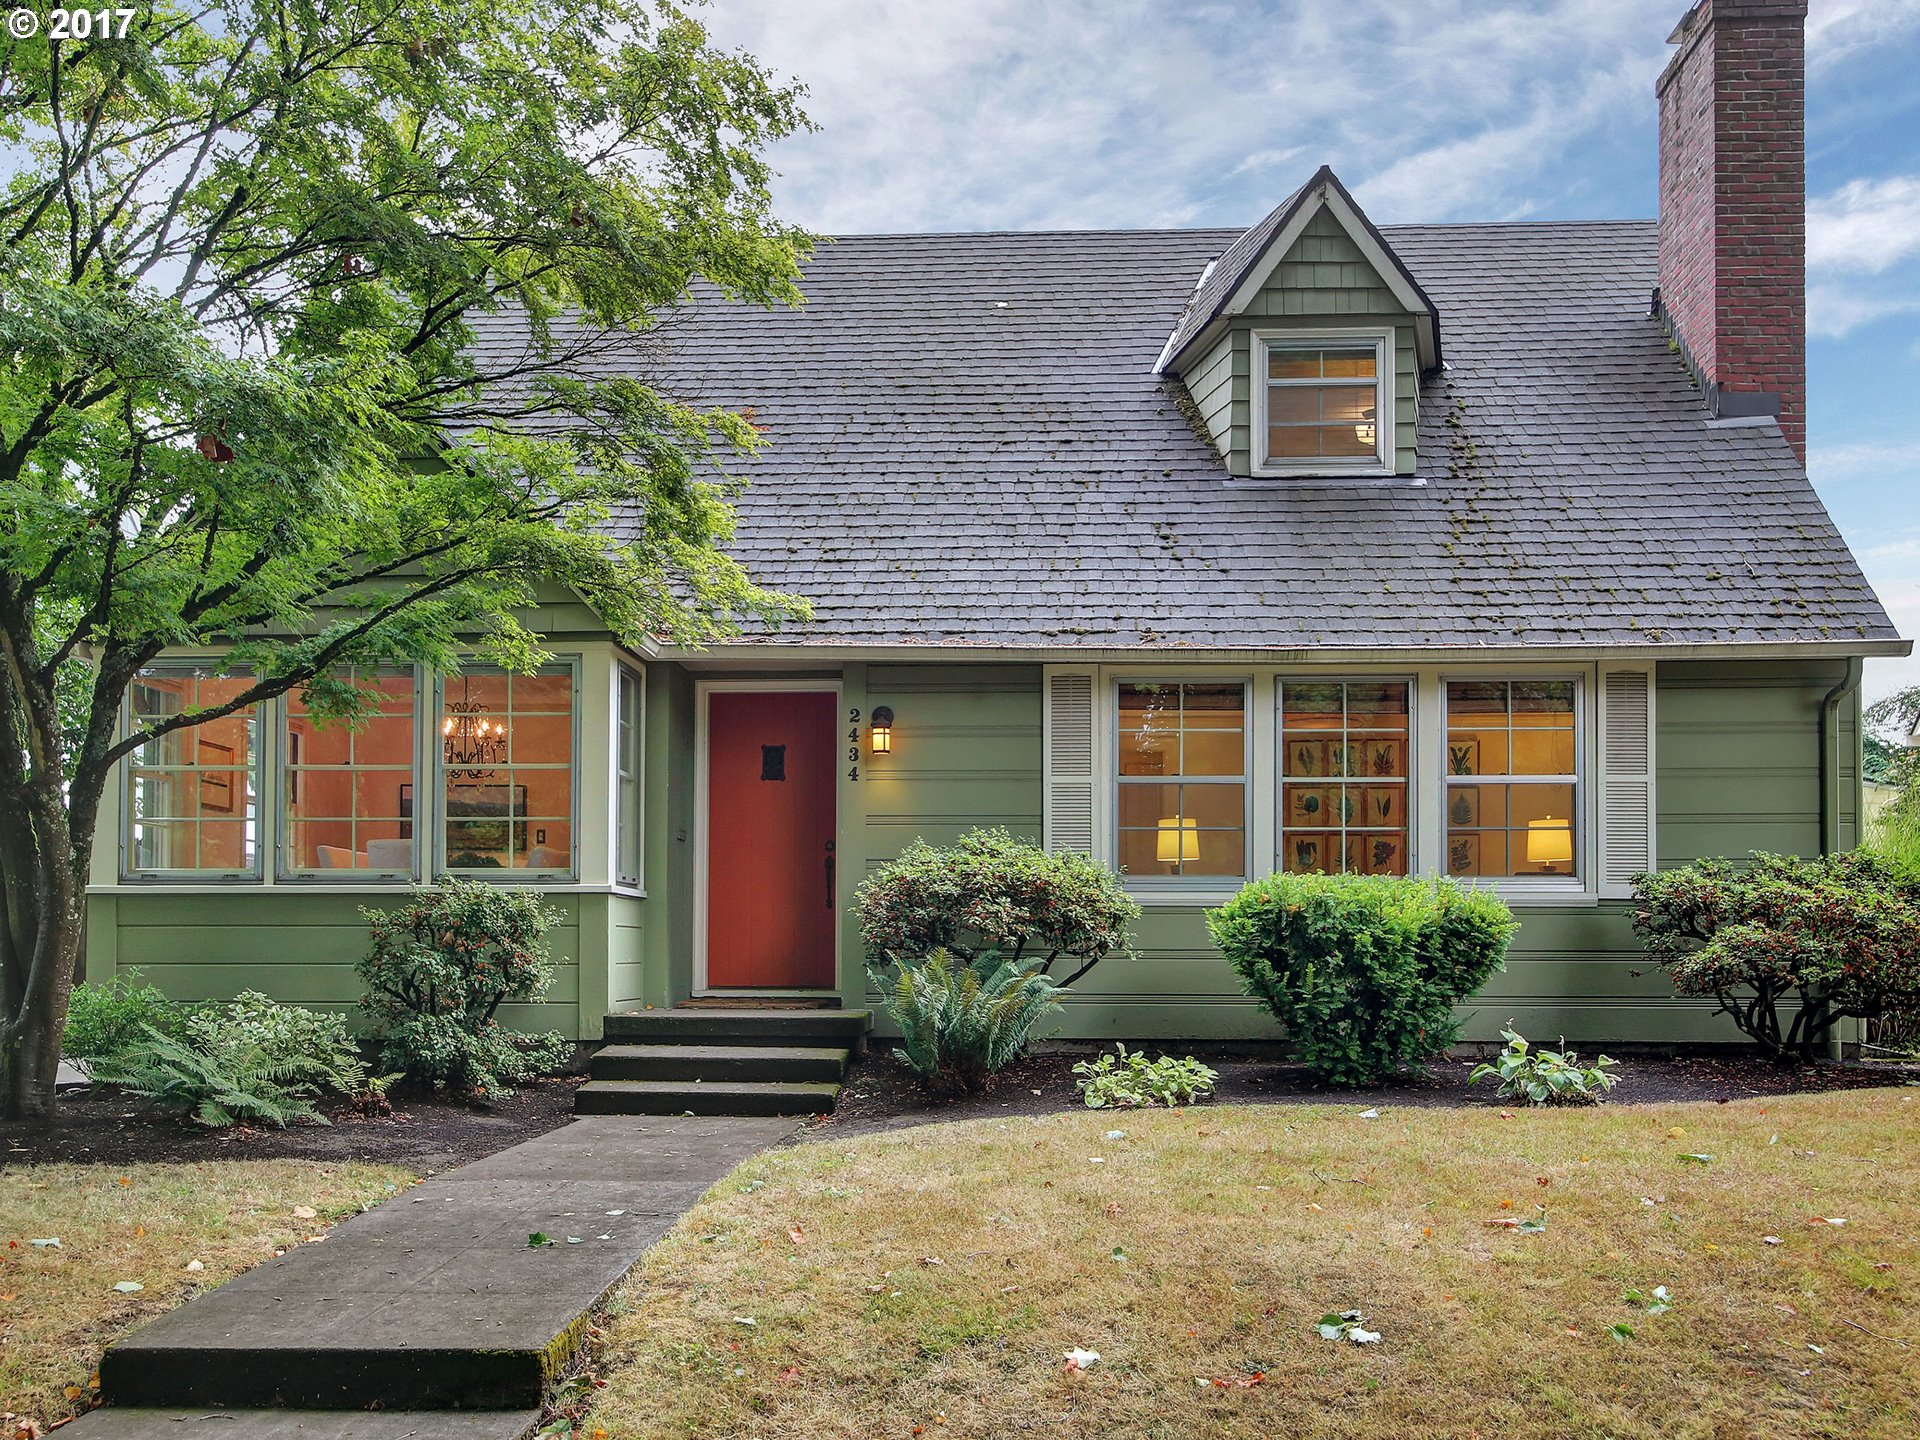 OPEN SAT 9/23 1PM-3PM!! Classic CapeCod in Portland's historic Irvington n'hood with abundance of character & lovely period details.This charmer features a light-filled living room w/wood burning fireplace, prvt dining rm and cozy kitchen that opens to outdoor patio.Gleaming hardwoods thruout. Upstairs boasts 2 addl. beds, including the master & fully-remodeled bathroom. Level backyard w/spacious patio is ideal for outdoor entertaining!